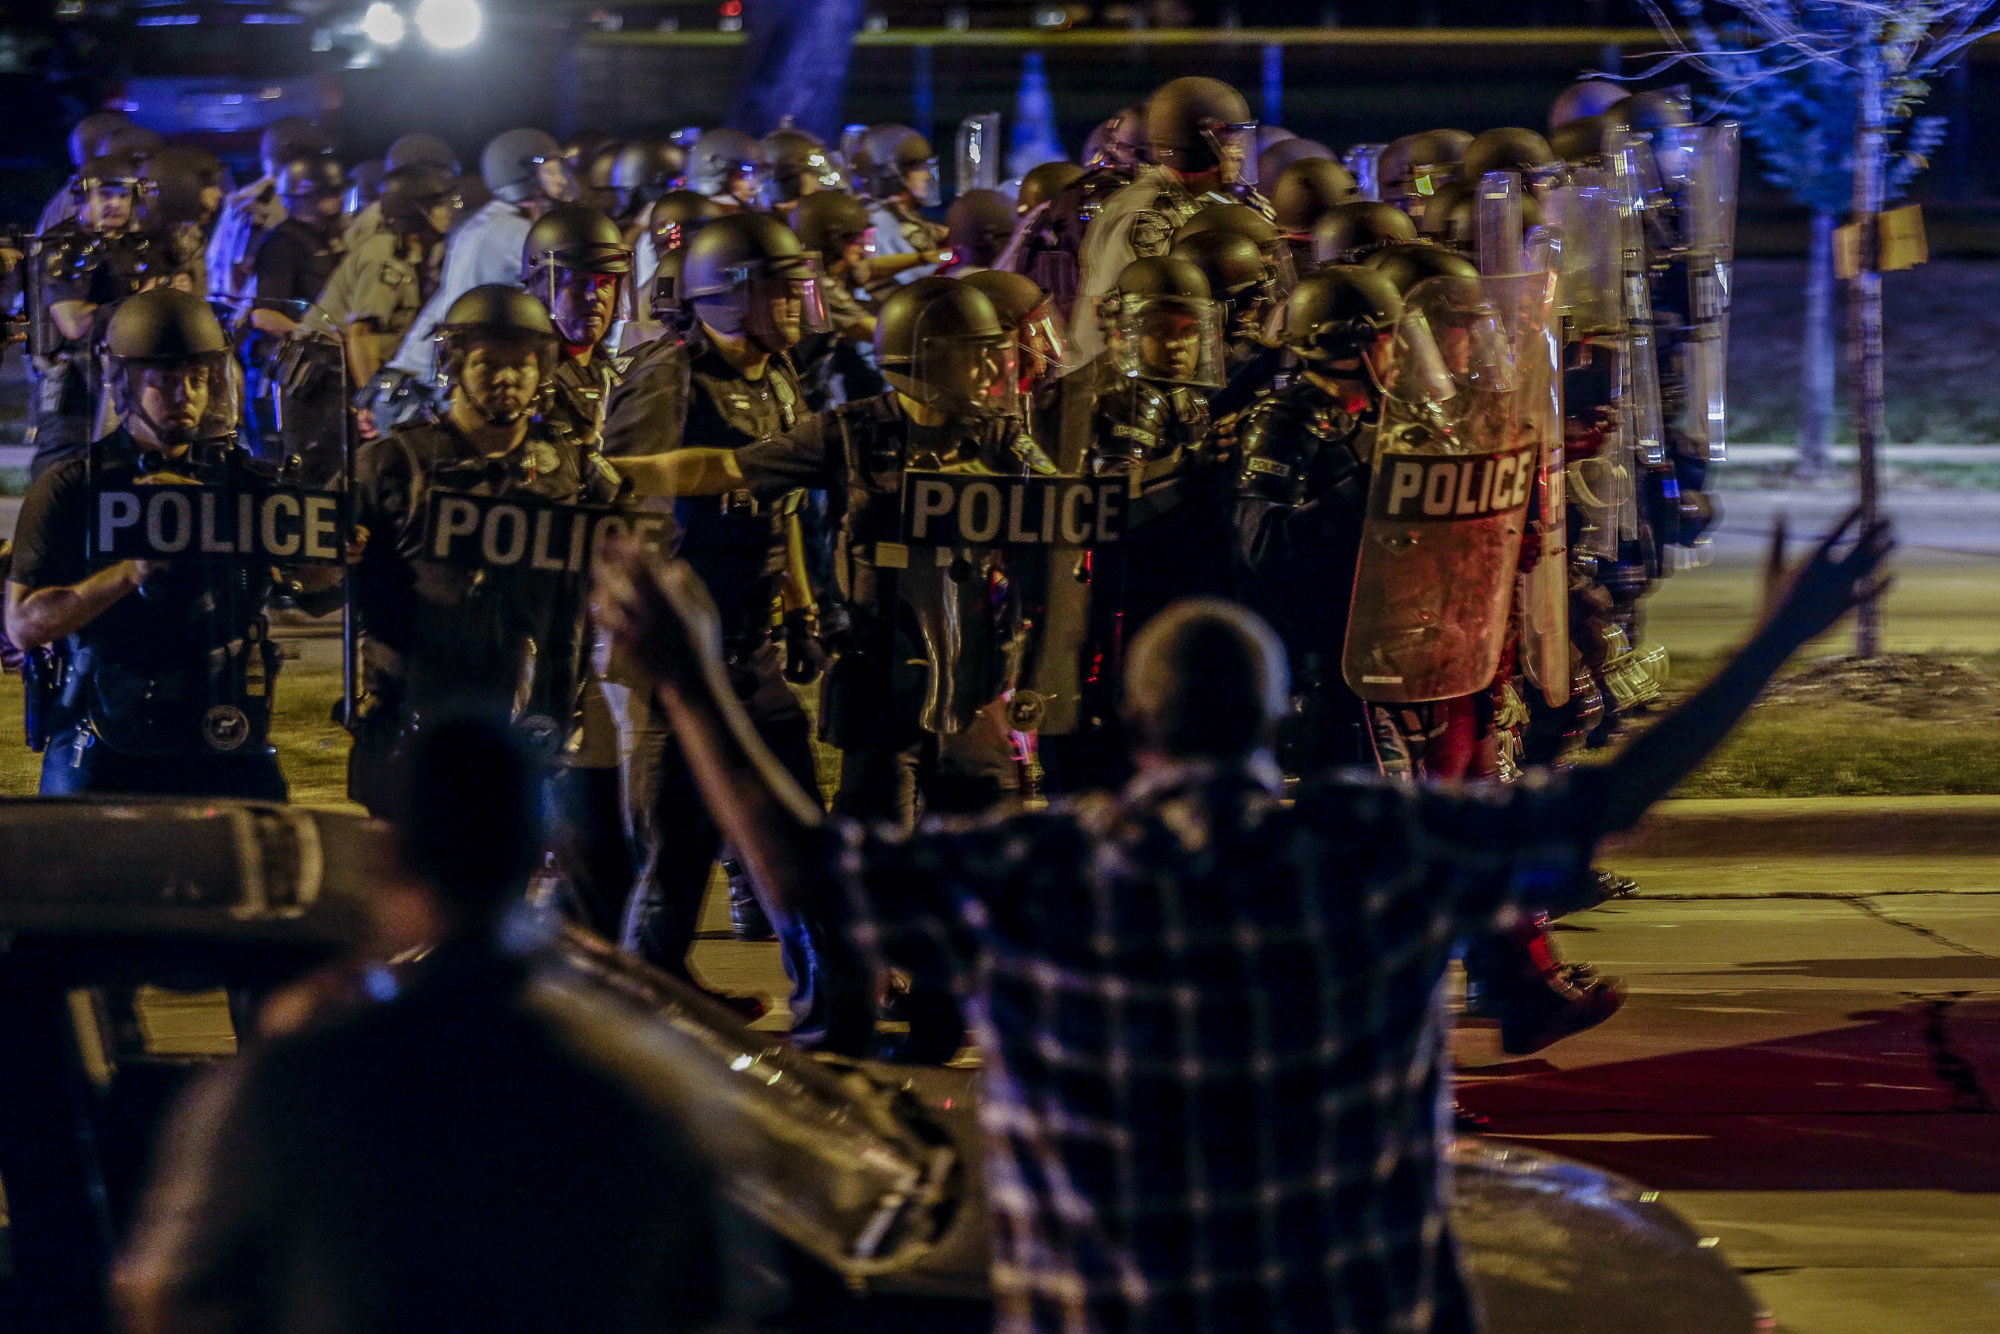 Police move in on a group of protesters throwing rocks at them in Milwaukee, Sunday, Aug. 14, 2016. Police said one person was shot at a Milwaukee protest on Sunday evening and officers used an armored vehicle to retrieve the injured victim during a second night of unrest over the police shooting of a black man, but there was no repeat of widespread destruction of property.